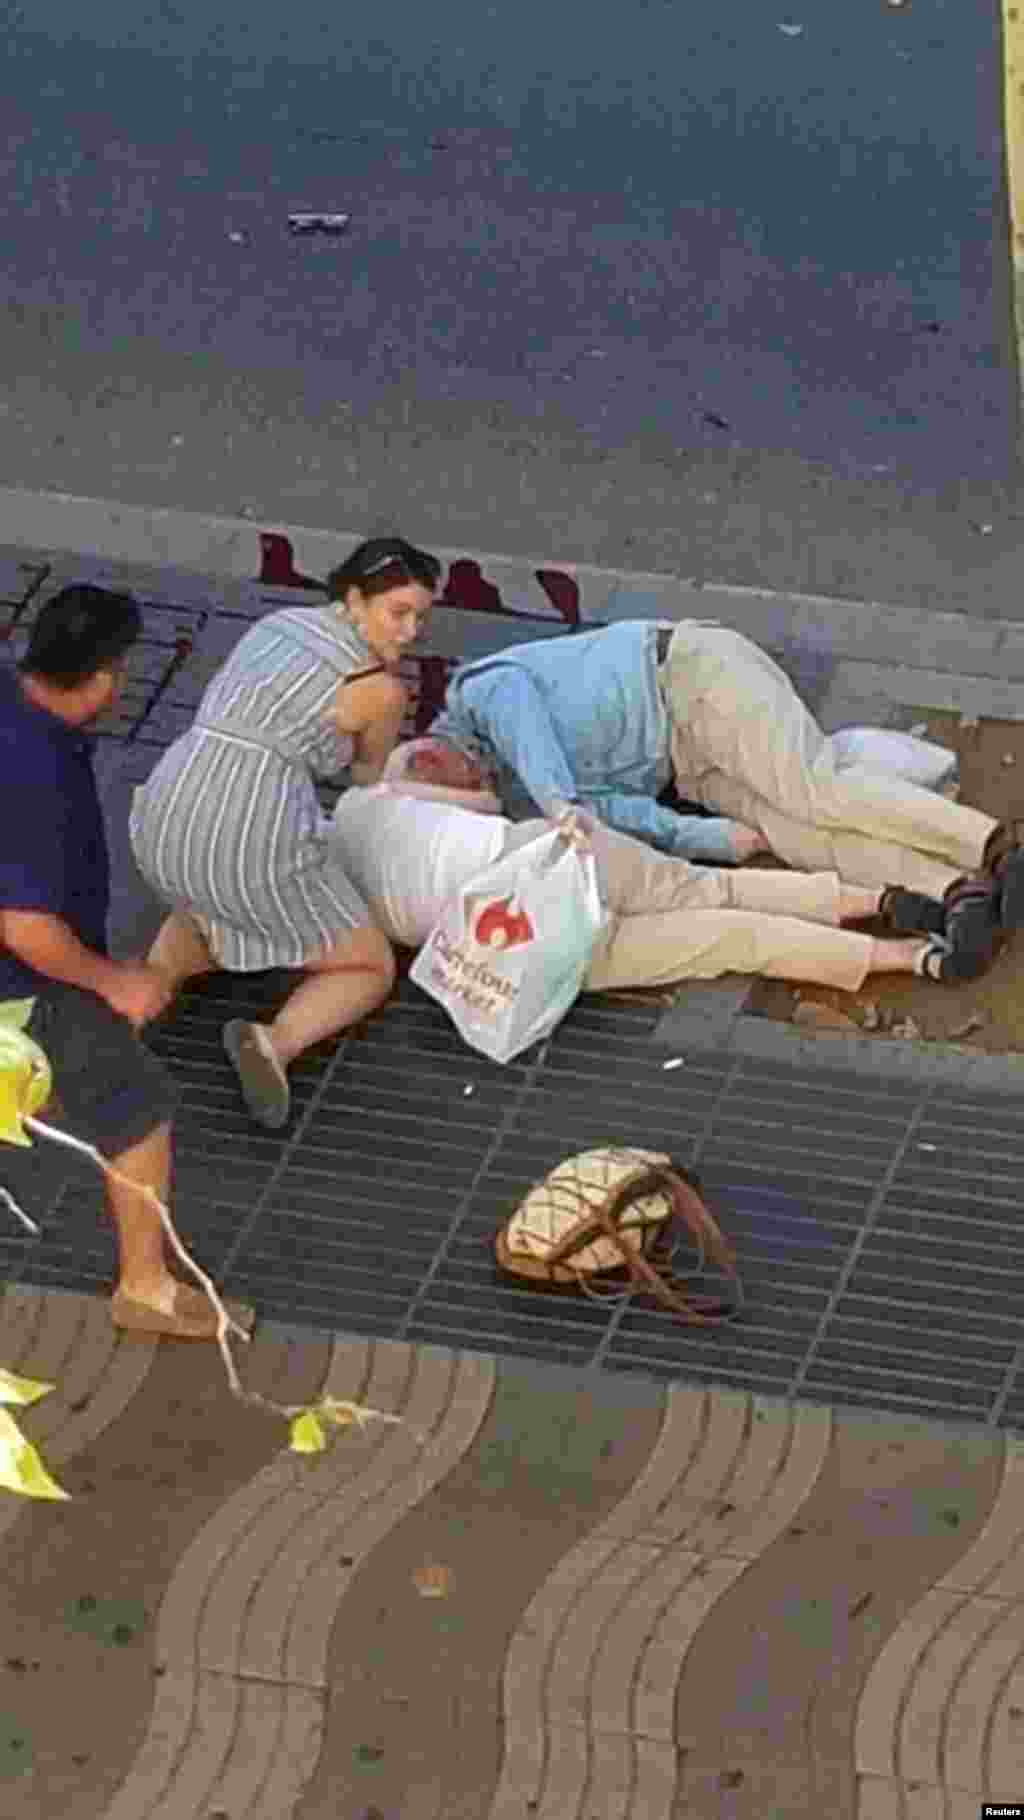 People attend to injured persons at the scene after a van crashed into pedestrians near the Las Ramblas avenue in central Barcelona, Spain, Aug. 17, 2017.